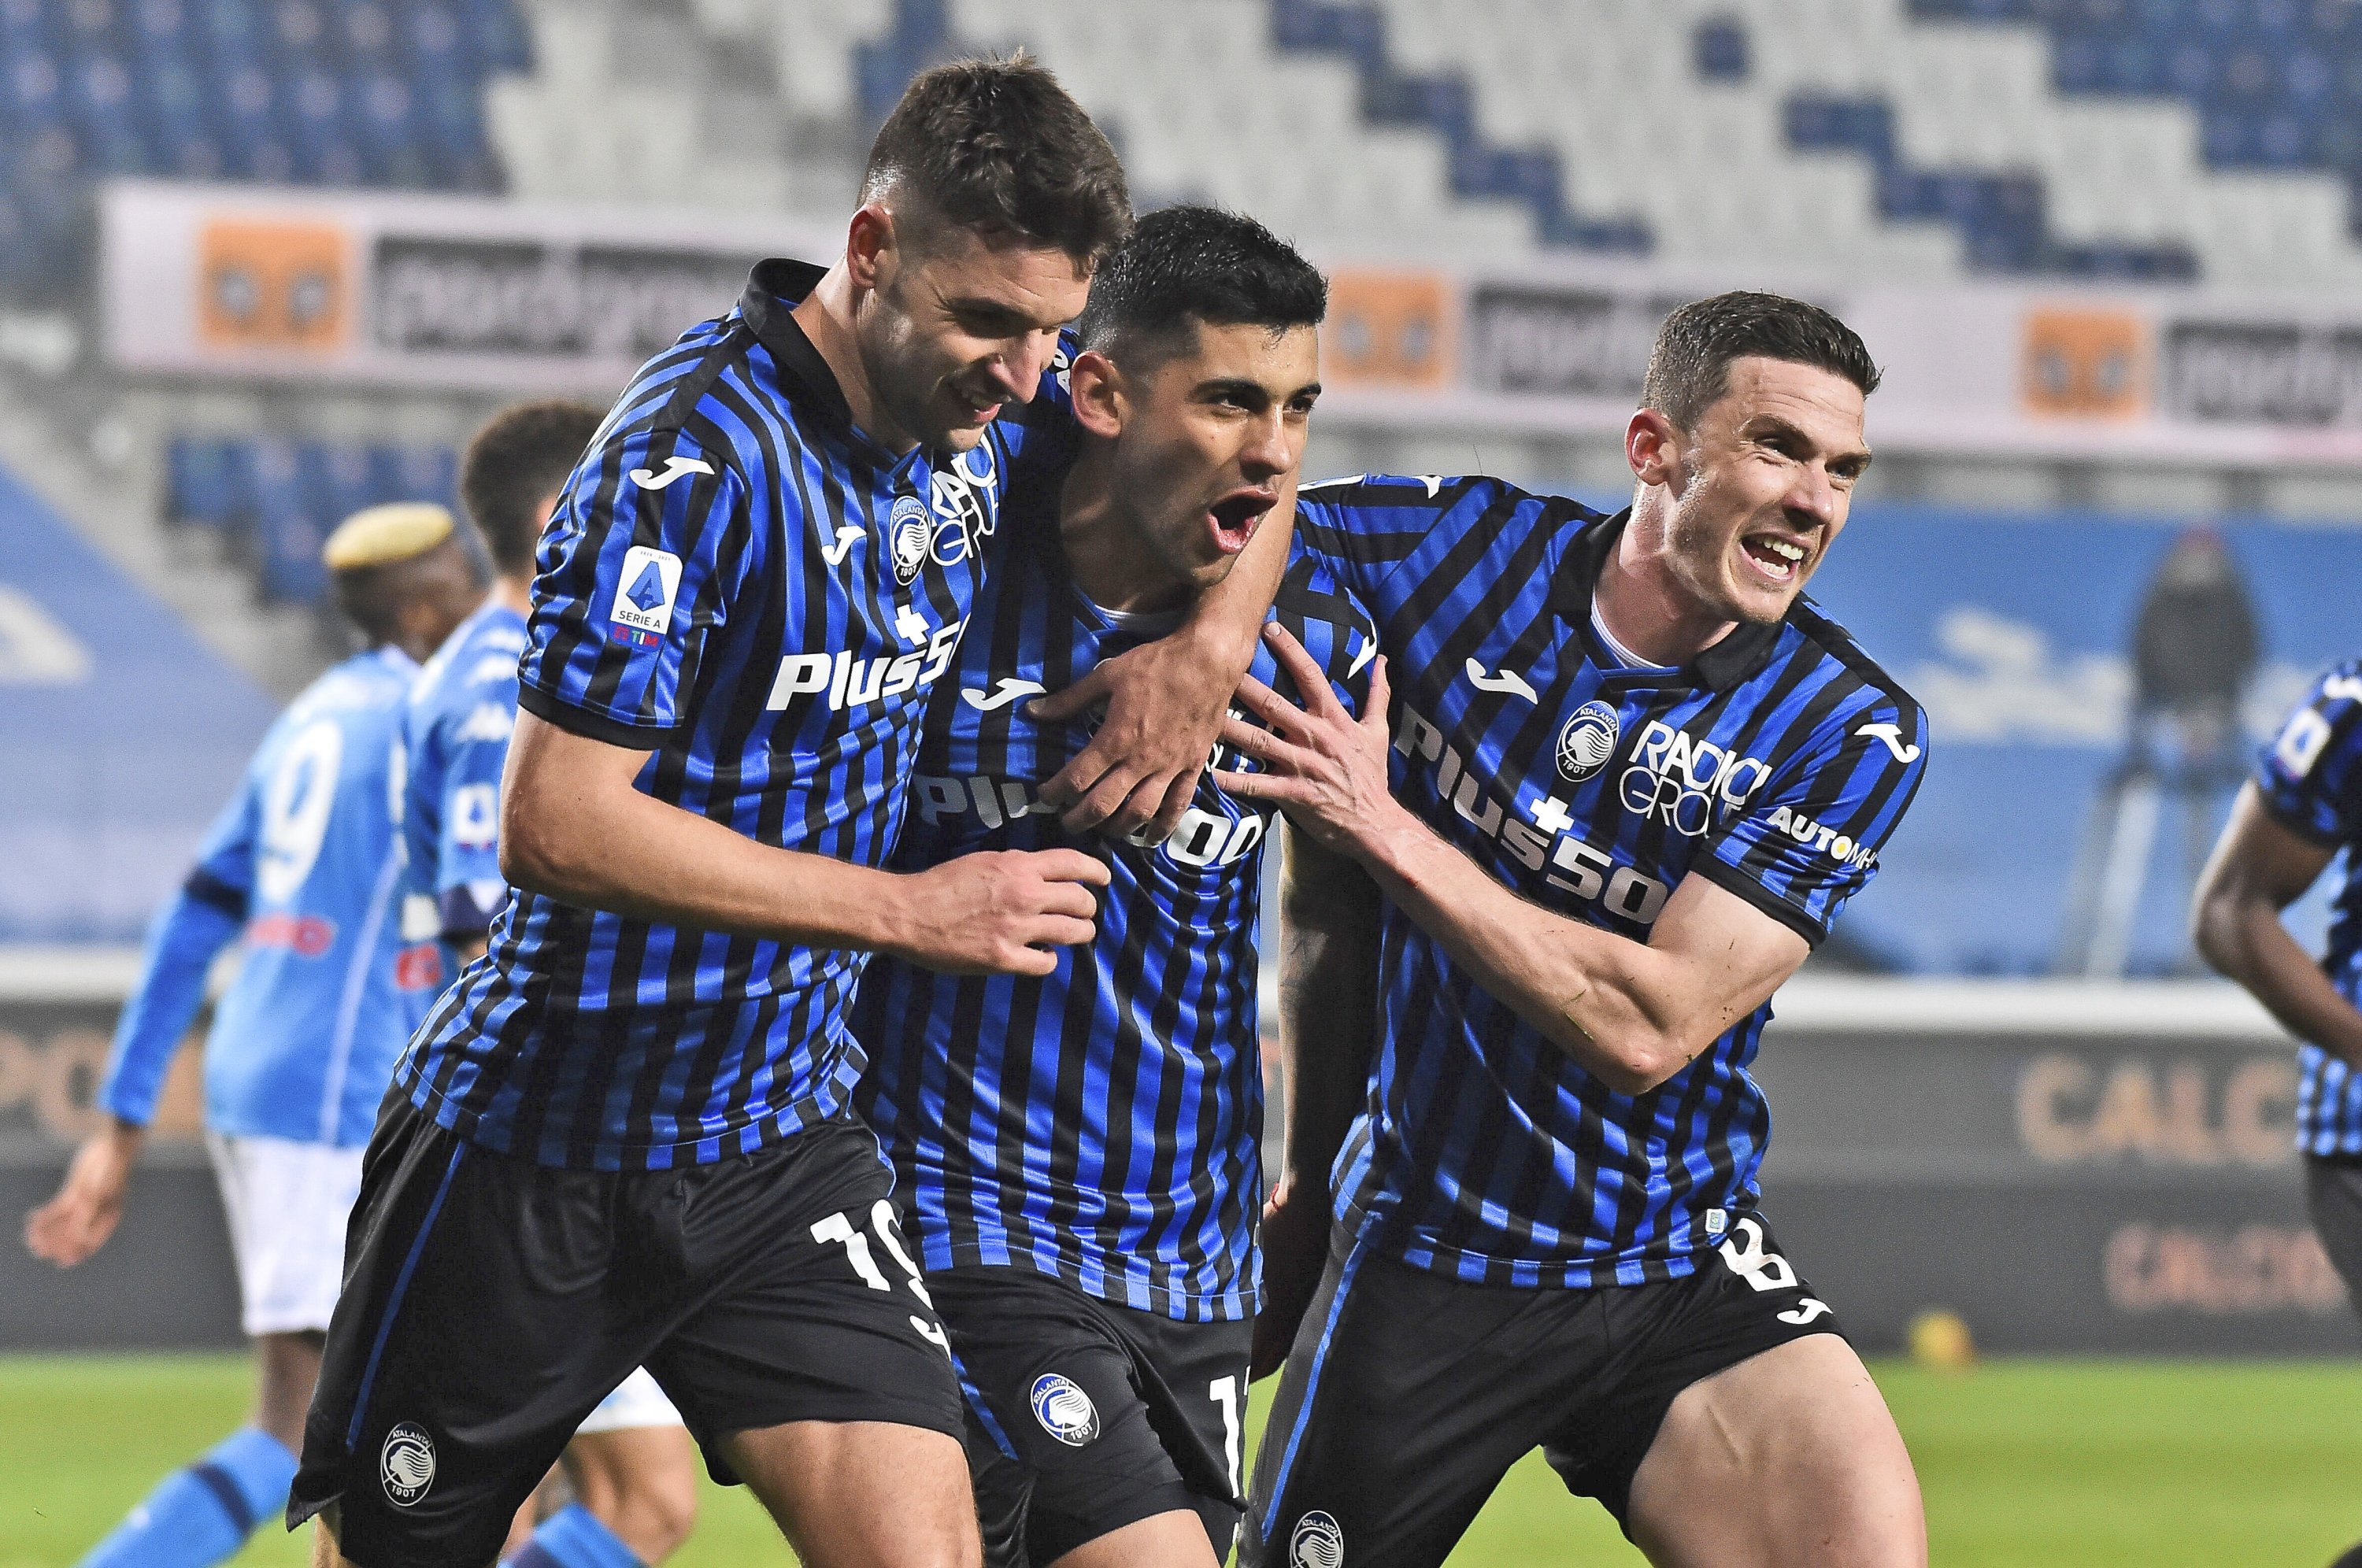 Atalanta's Cristian Romero (C) celebrates with teammates after scoring his side's fourth goal during a Serie A match against Napoli, in Bergamo, Italy, Feb. 21, 2021. (AP Photo)